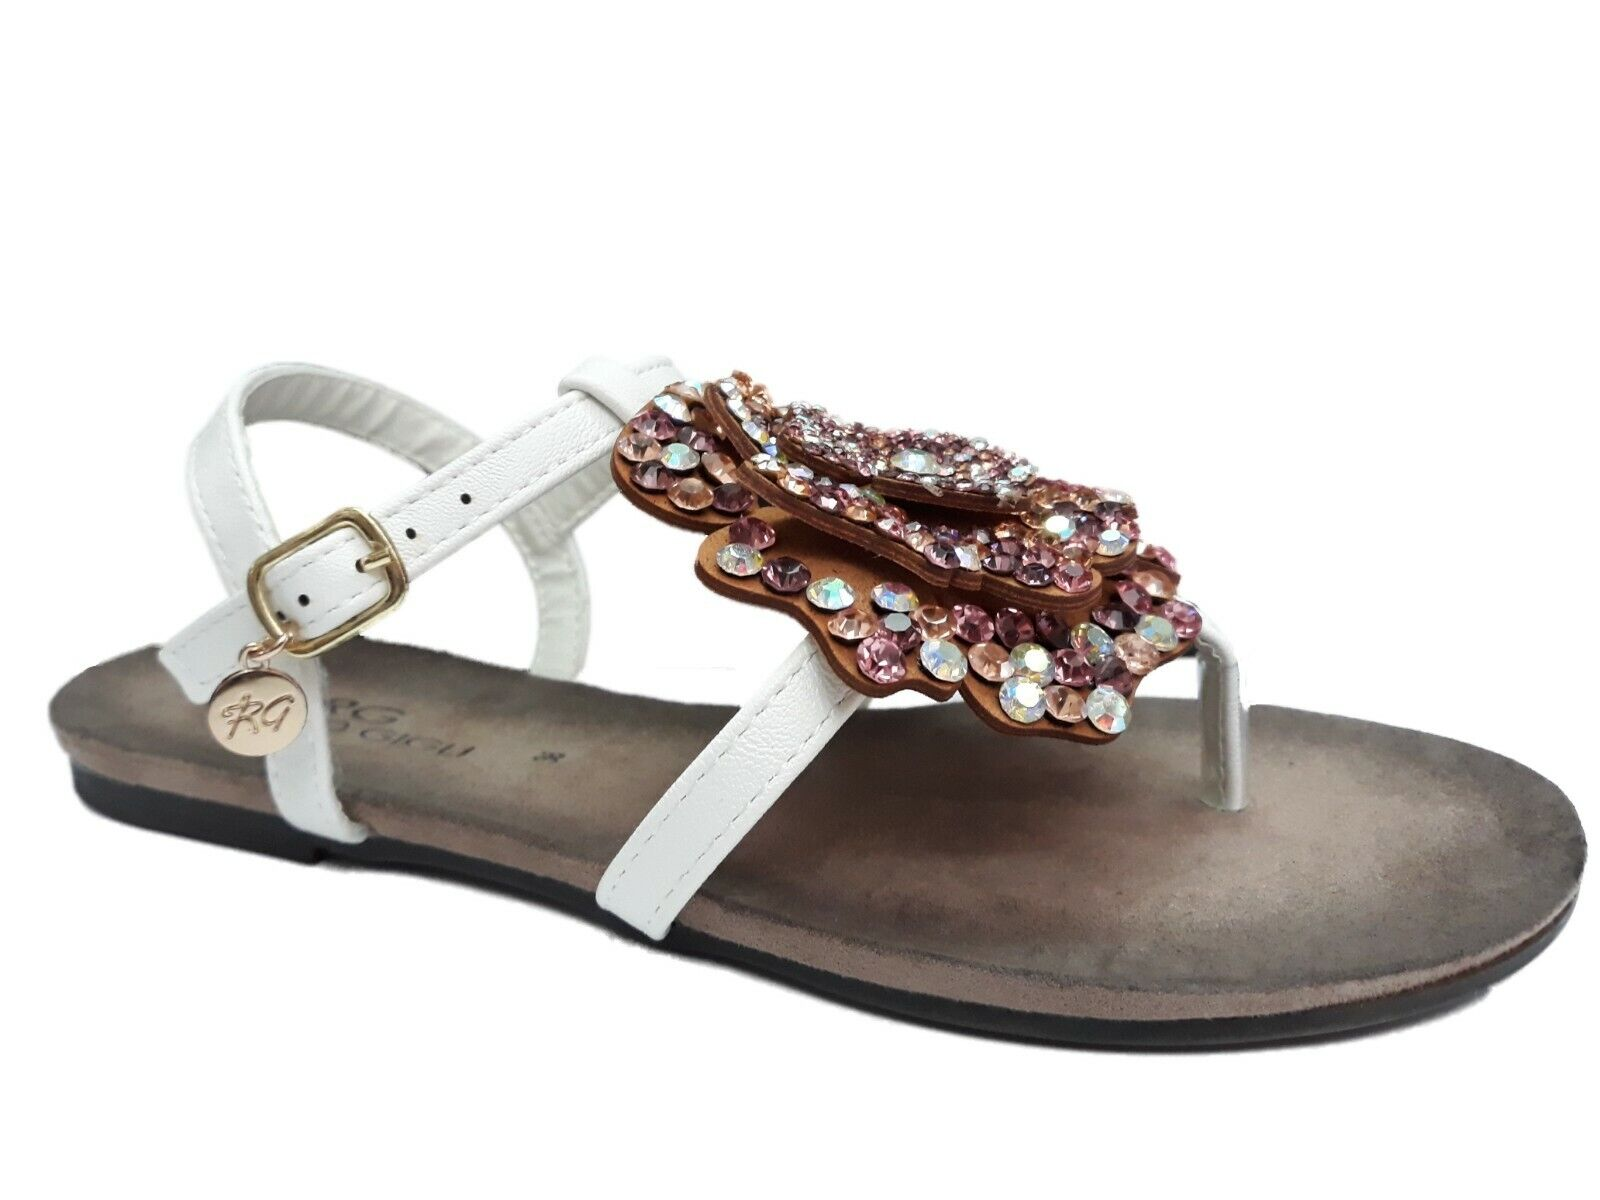 mujer Thong Sandals with Buckles ROMEO GIGLI Leather blanco Number 38